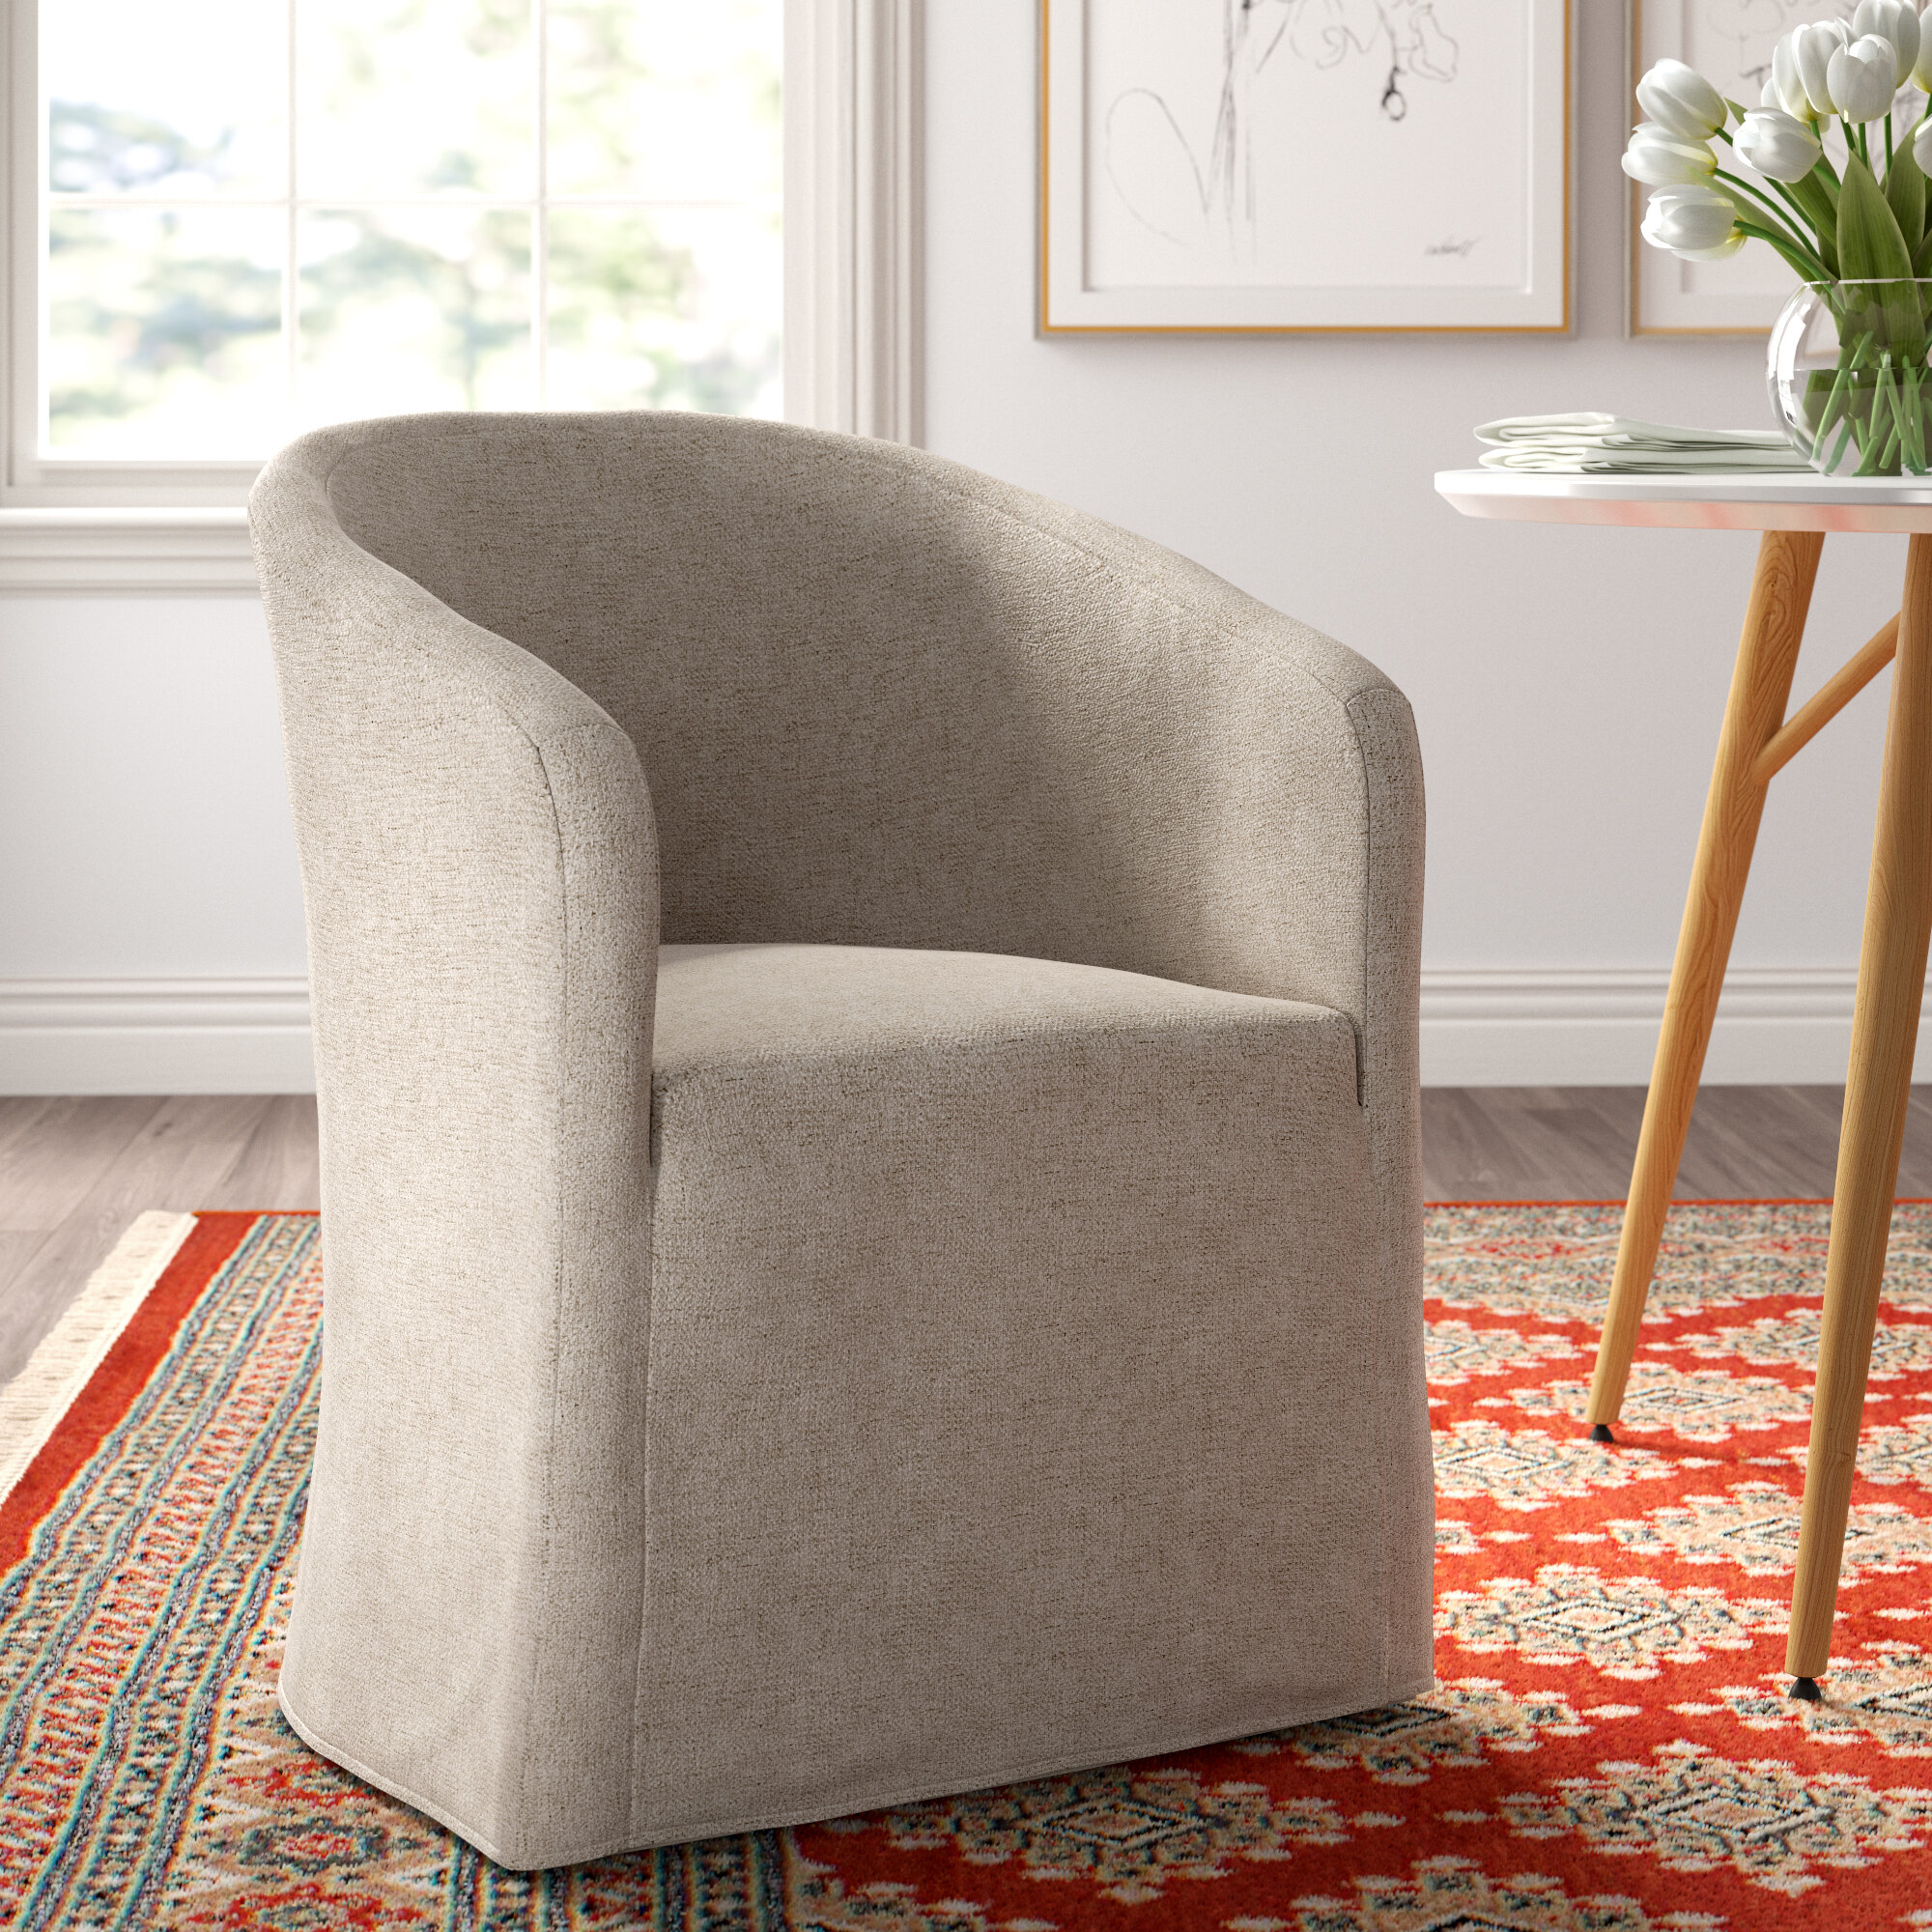 Cairo Upholstered Wingback Arm Chair in Beige